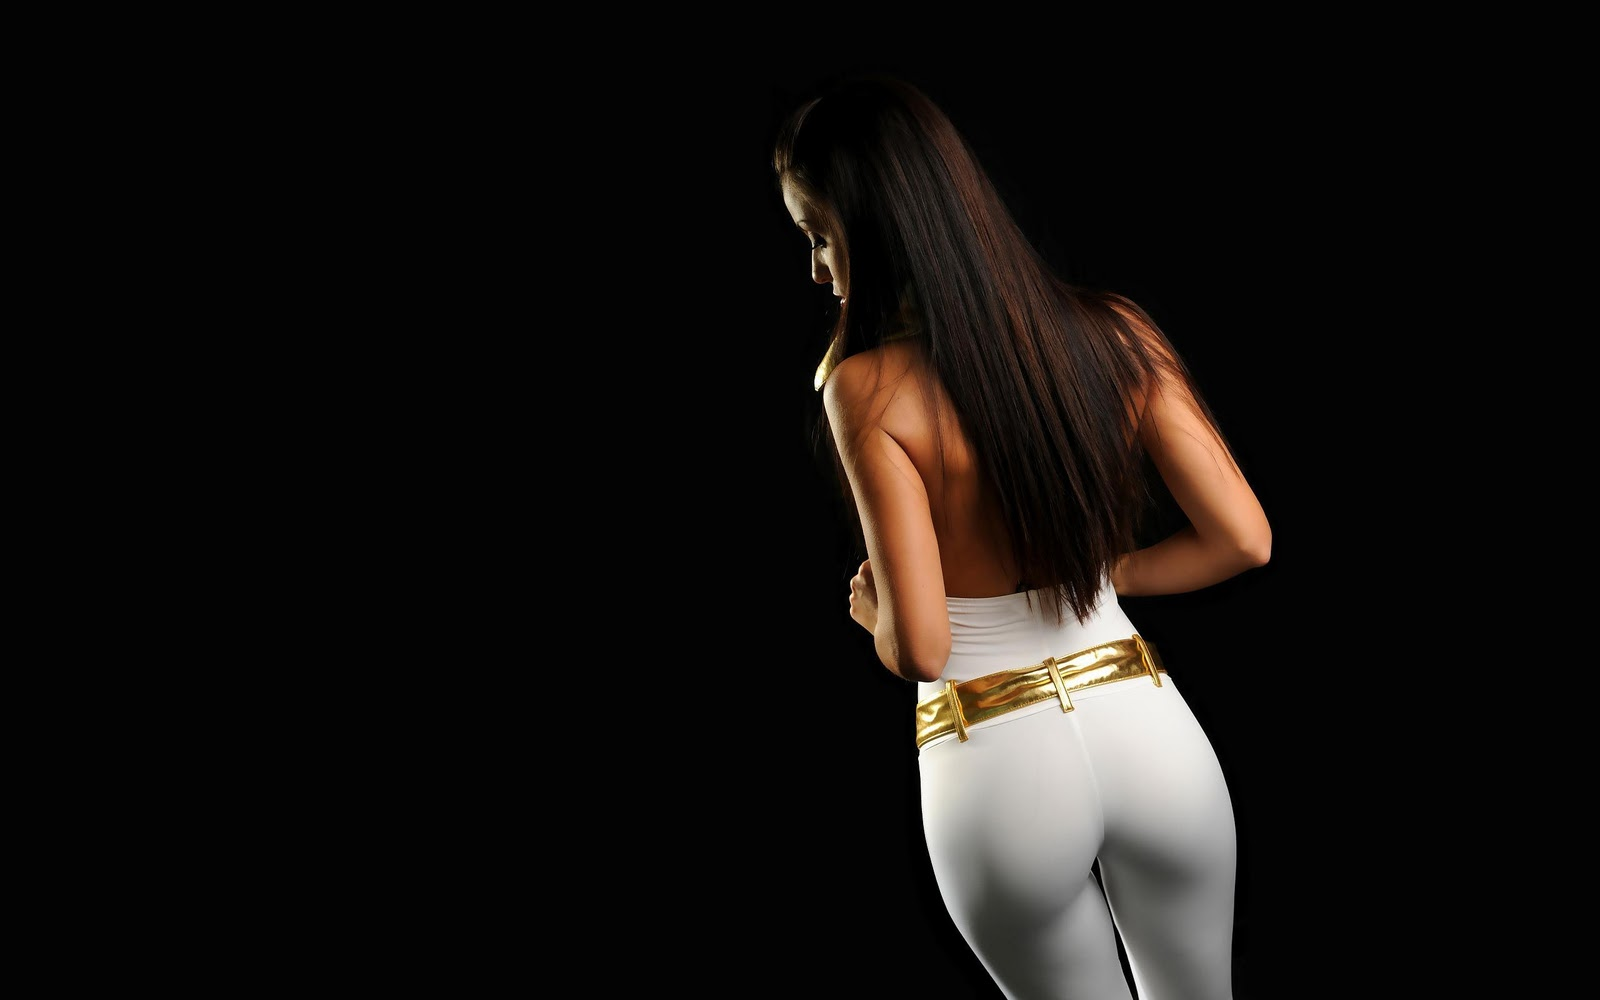 WongSeng HD Wallpapers: Wallpaper Hot Sexy Ass In white Tights